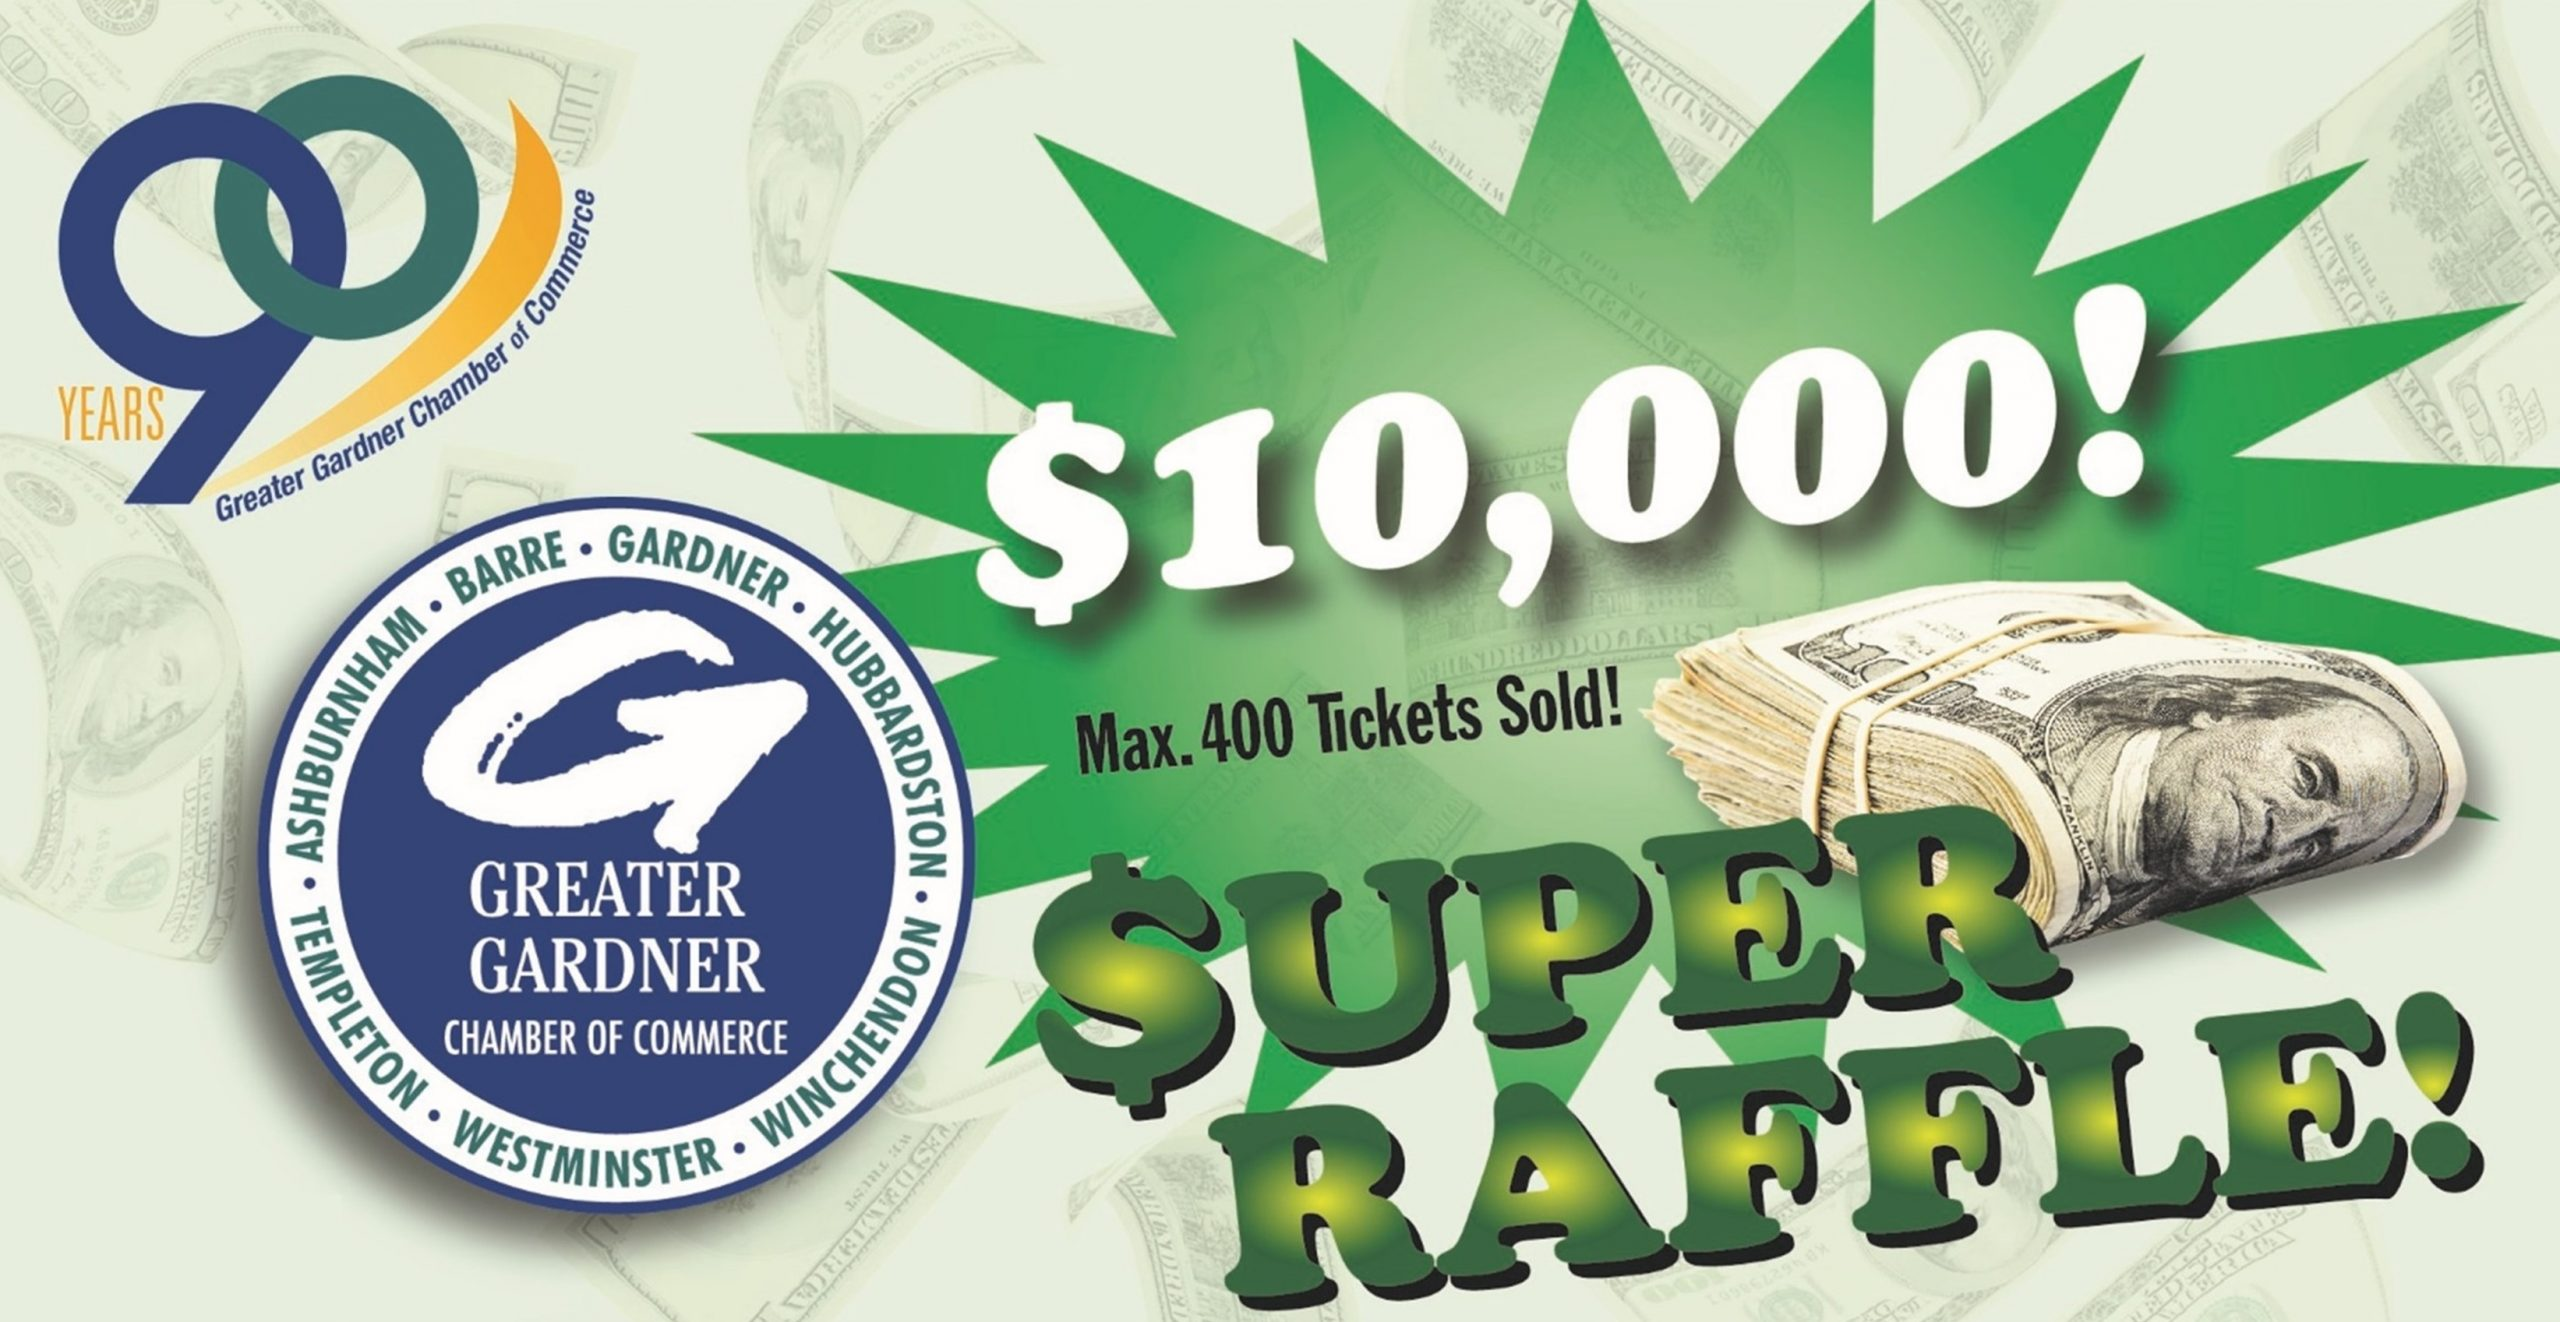 Super Raffle Tickets Available at Local Locations